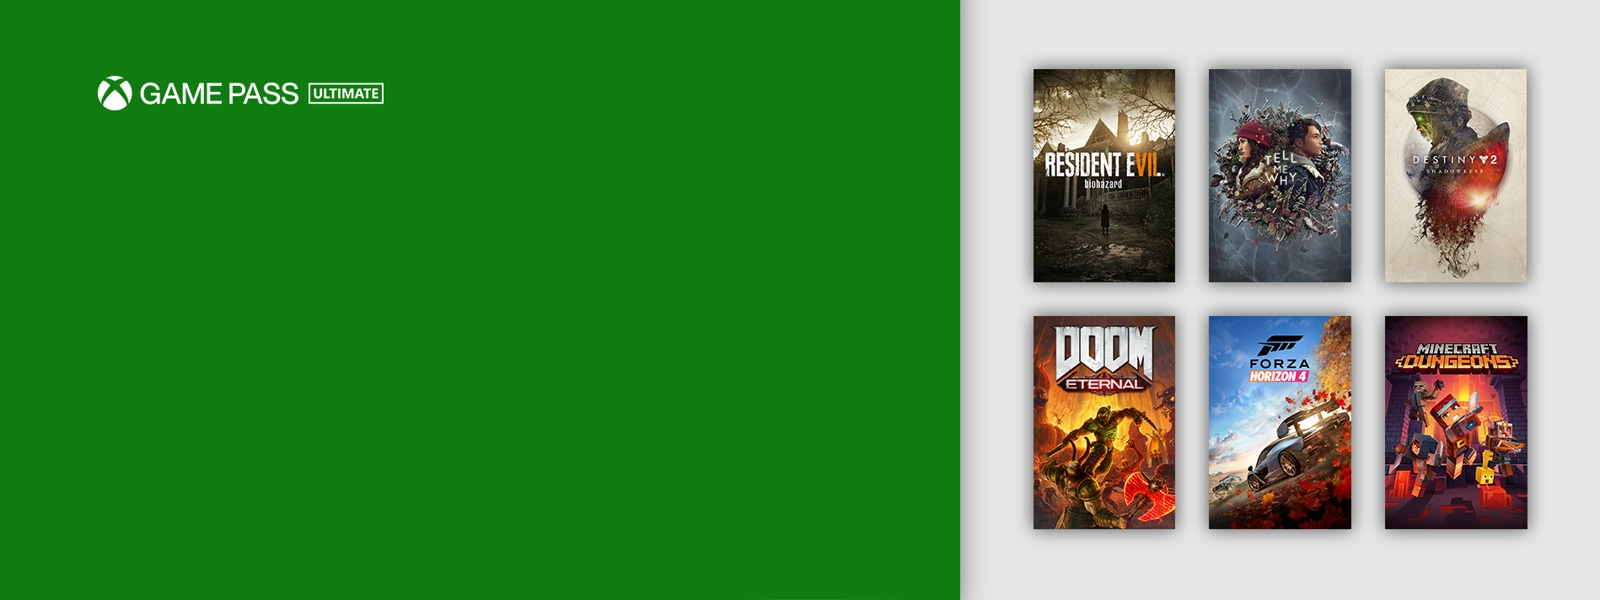 Xbox Game Pass Ultimate logo and digital games.